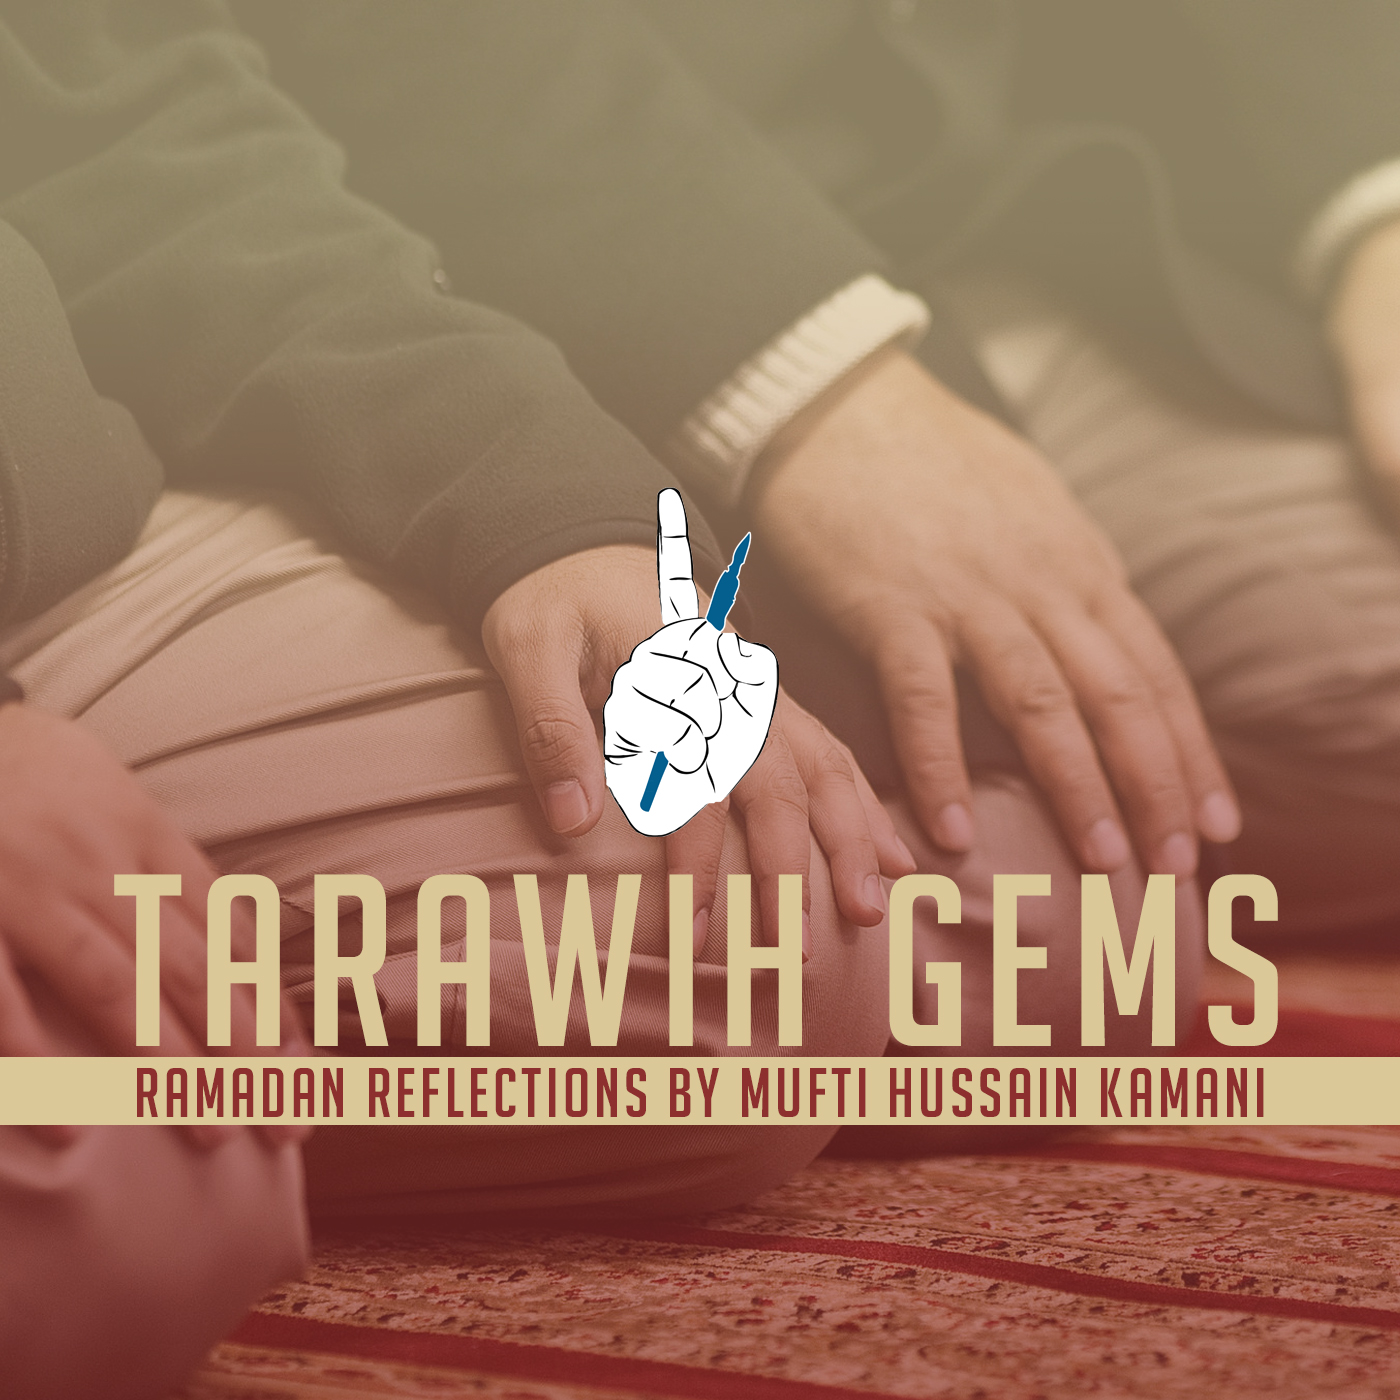 Tarawih Gems – The Book That Never Ends